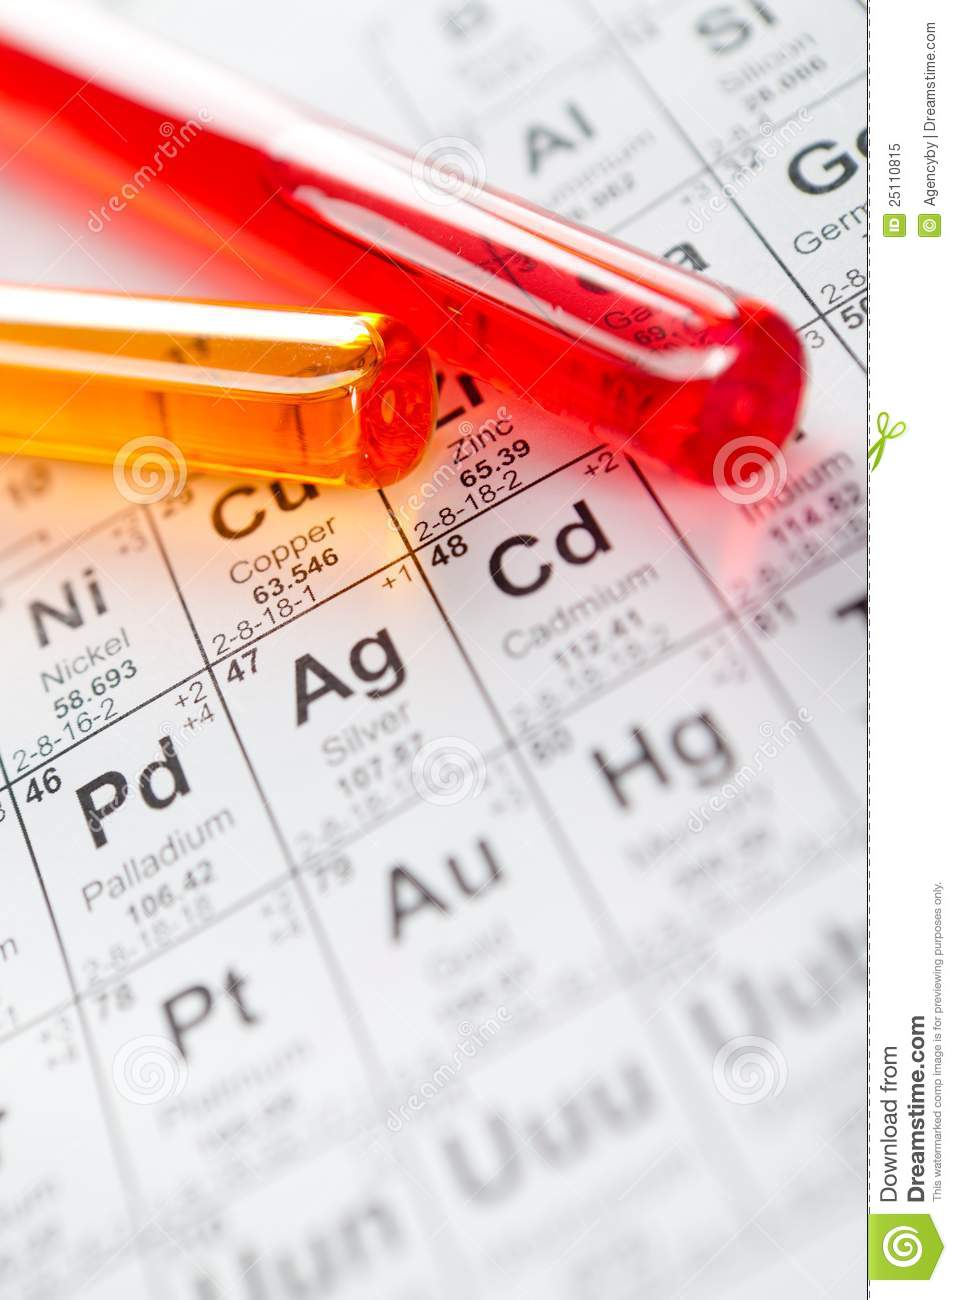 Two glass test tubes on the periodic table stock image image two glass test tubes on the periodic table gamestrikefo Image collections